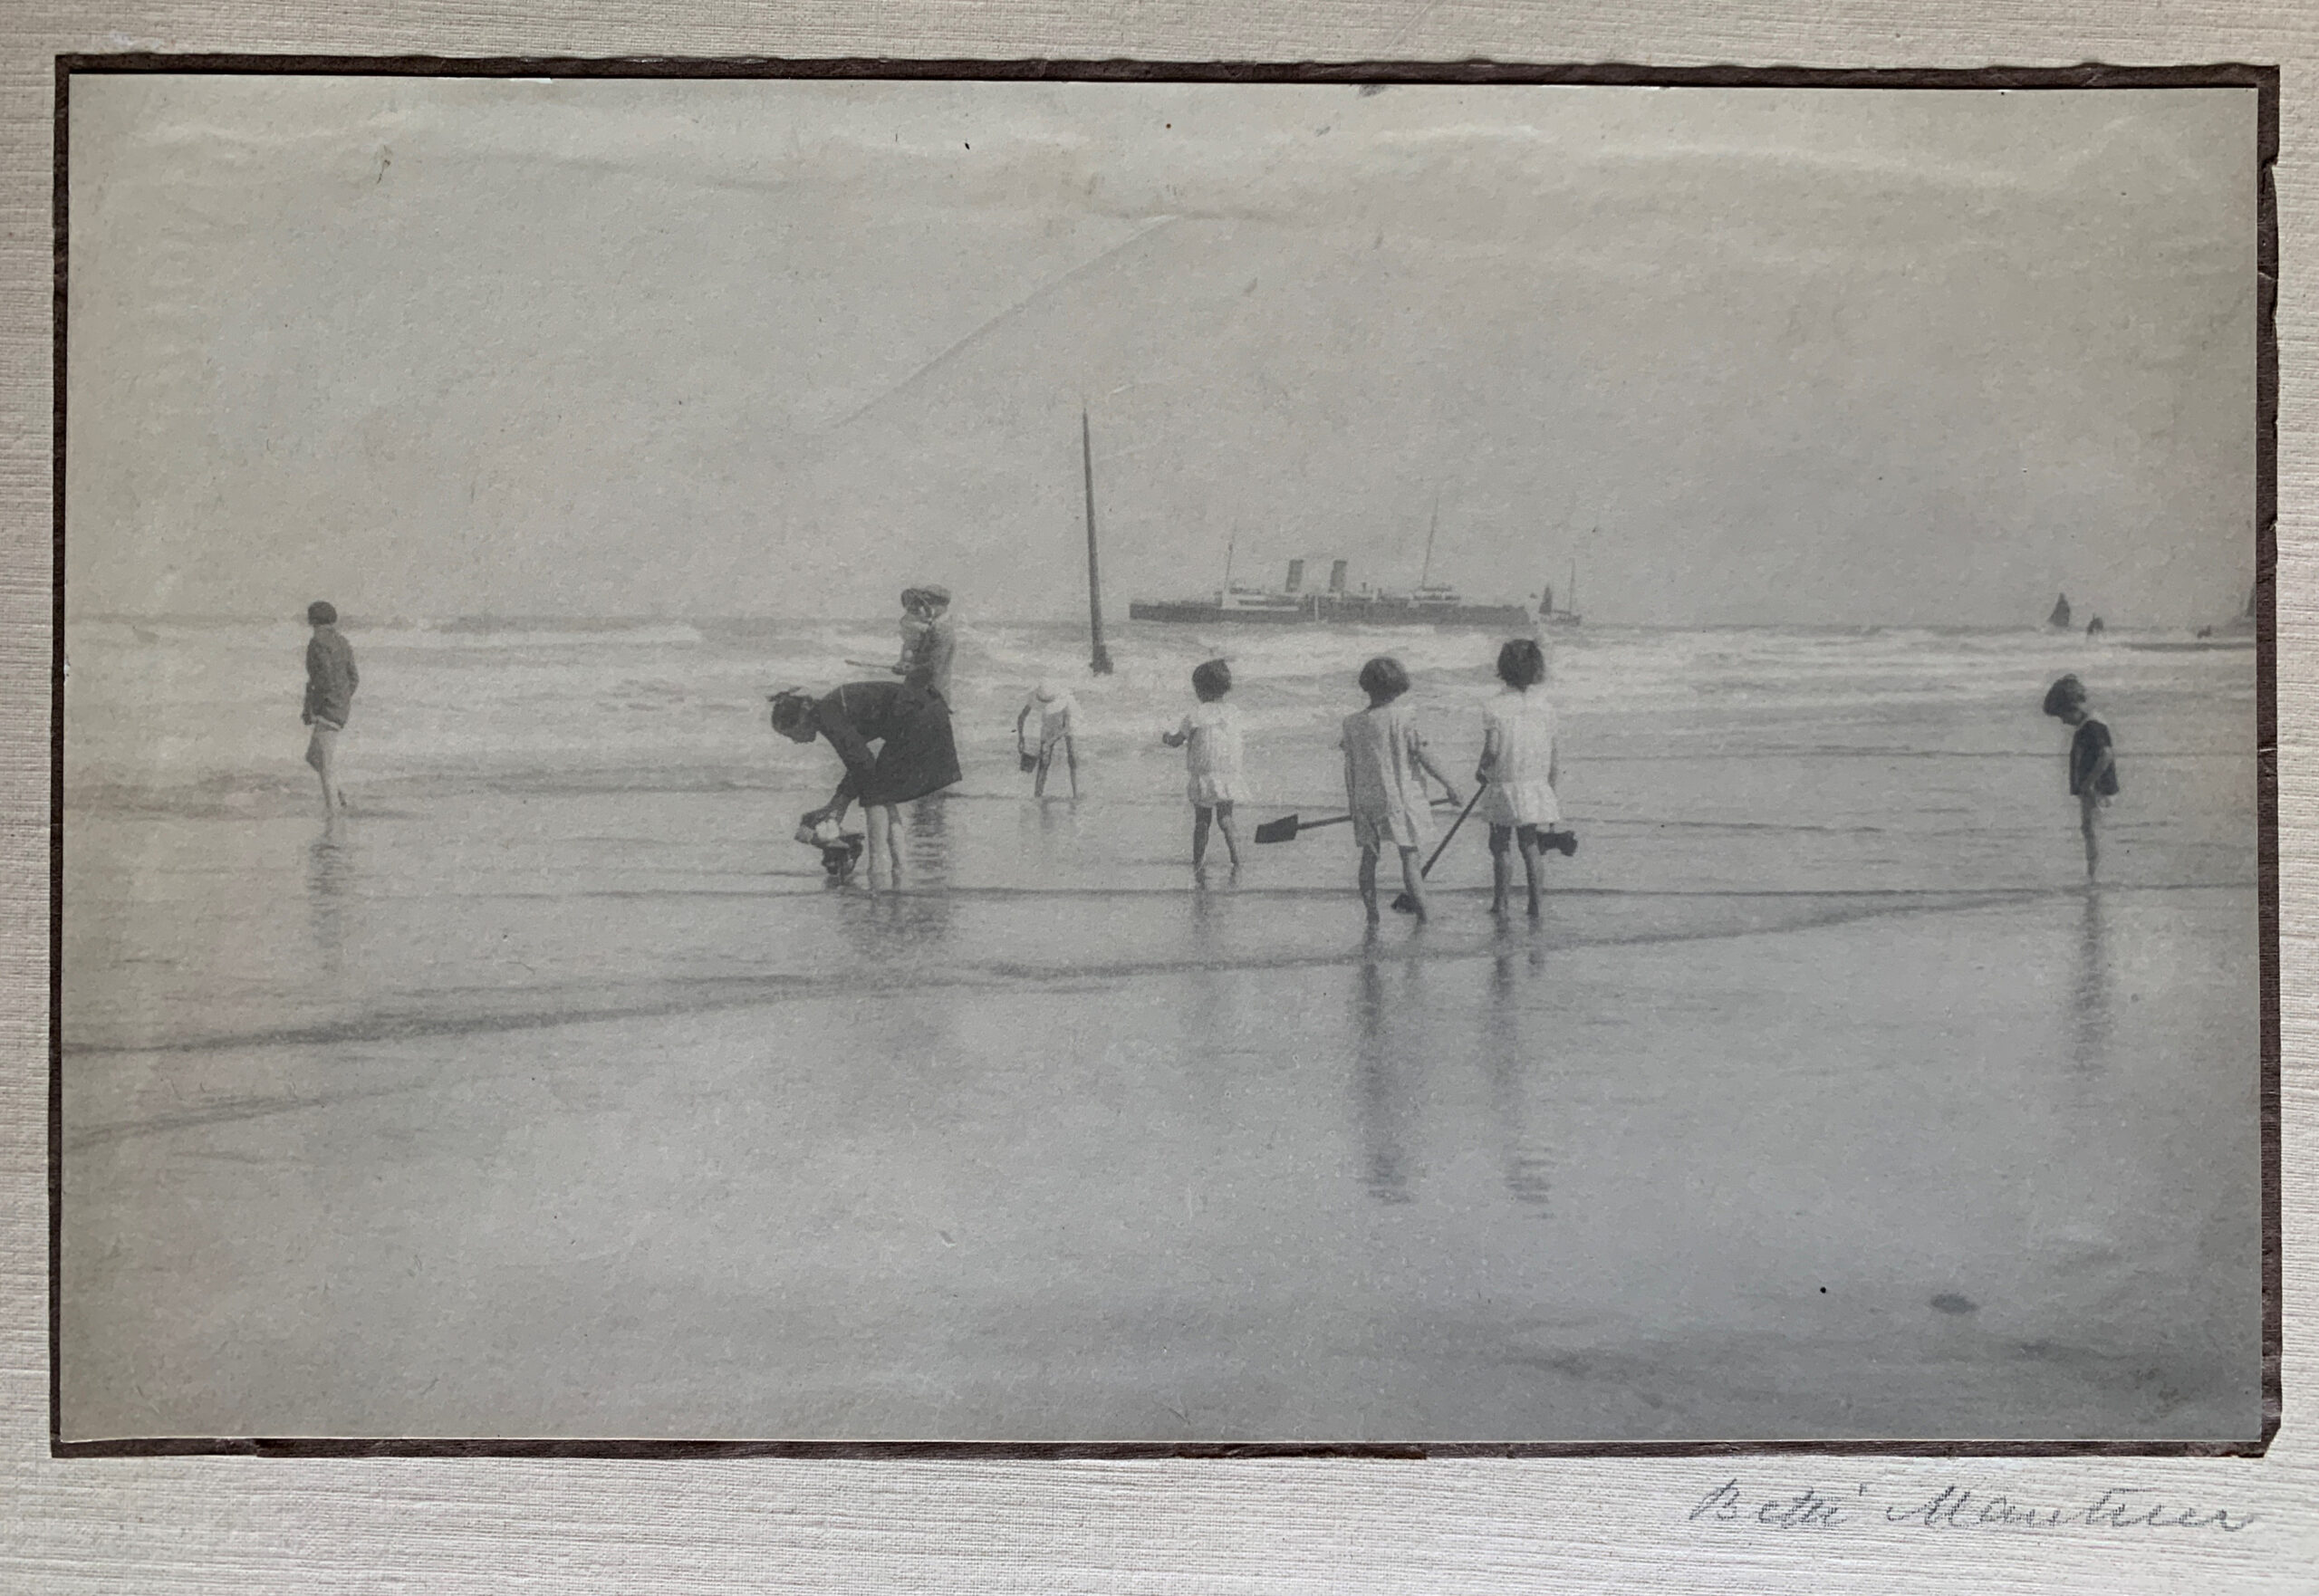 A Misty Morning Beach Gossip, 1919 by Betti Mautner © James Hyman. Children with spades are digging at the waters edge of the beach.